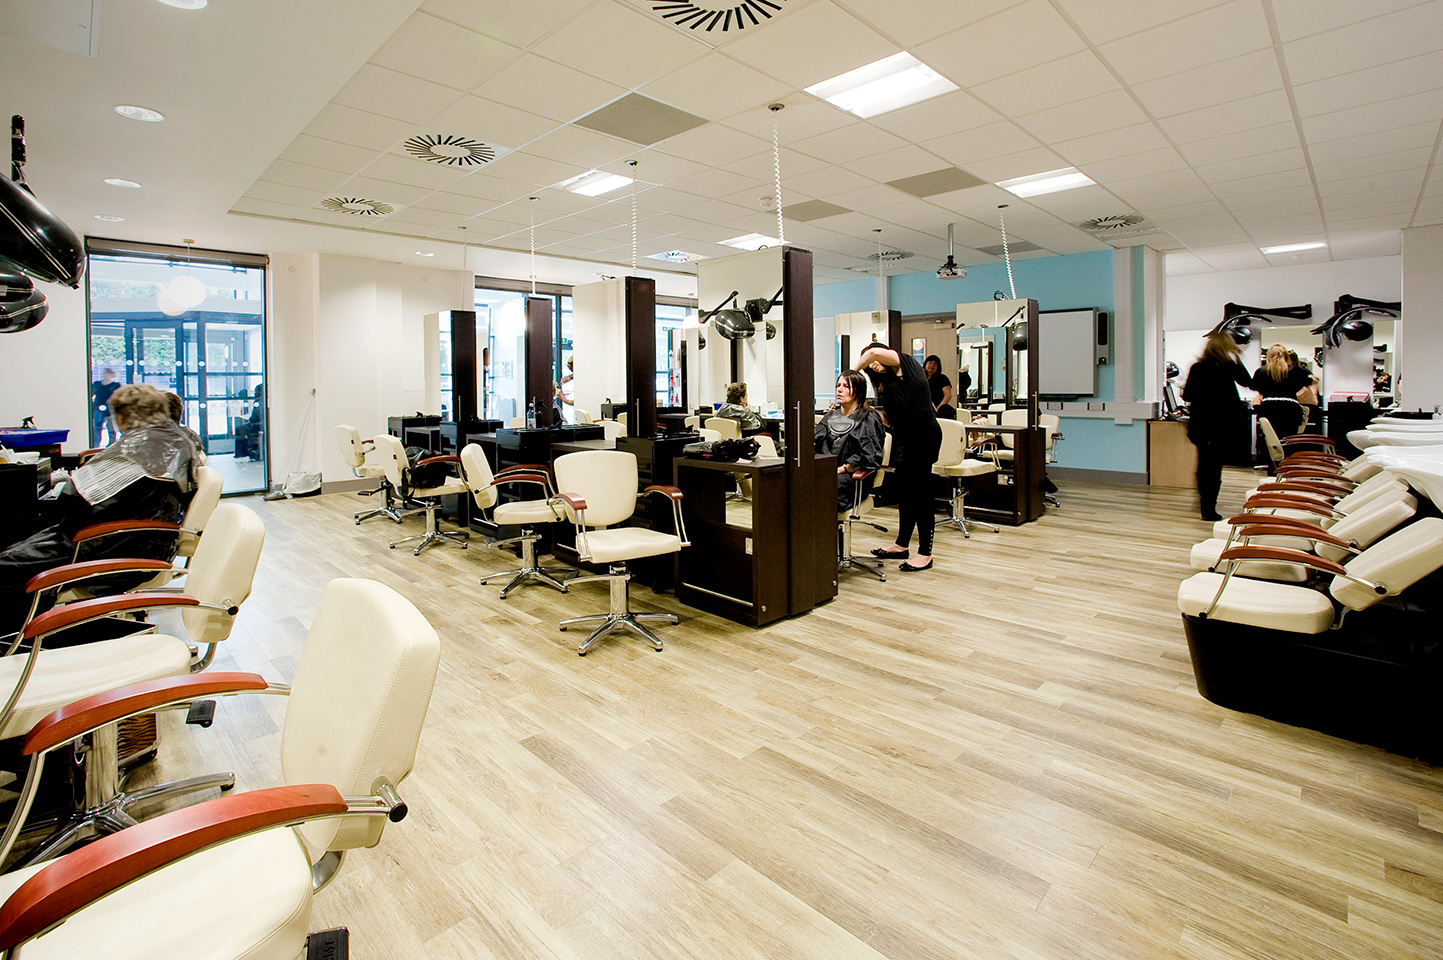 eden salon beauty salons hair highbury services facilities clients nus valid receive discount students production card 30pm